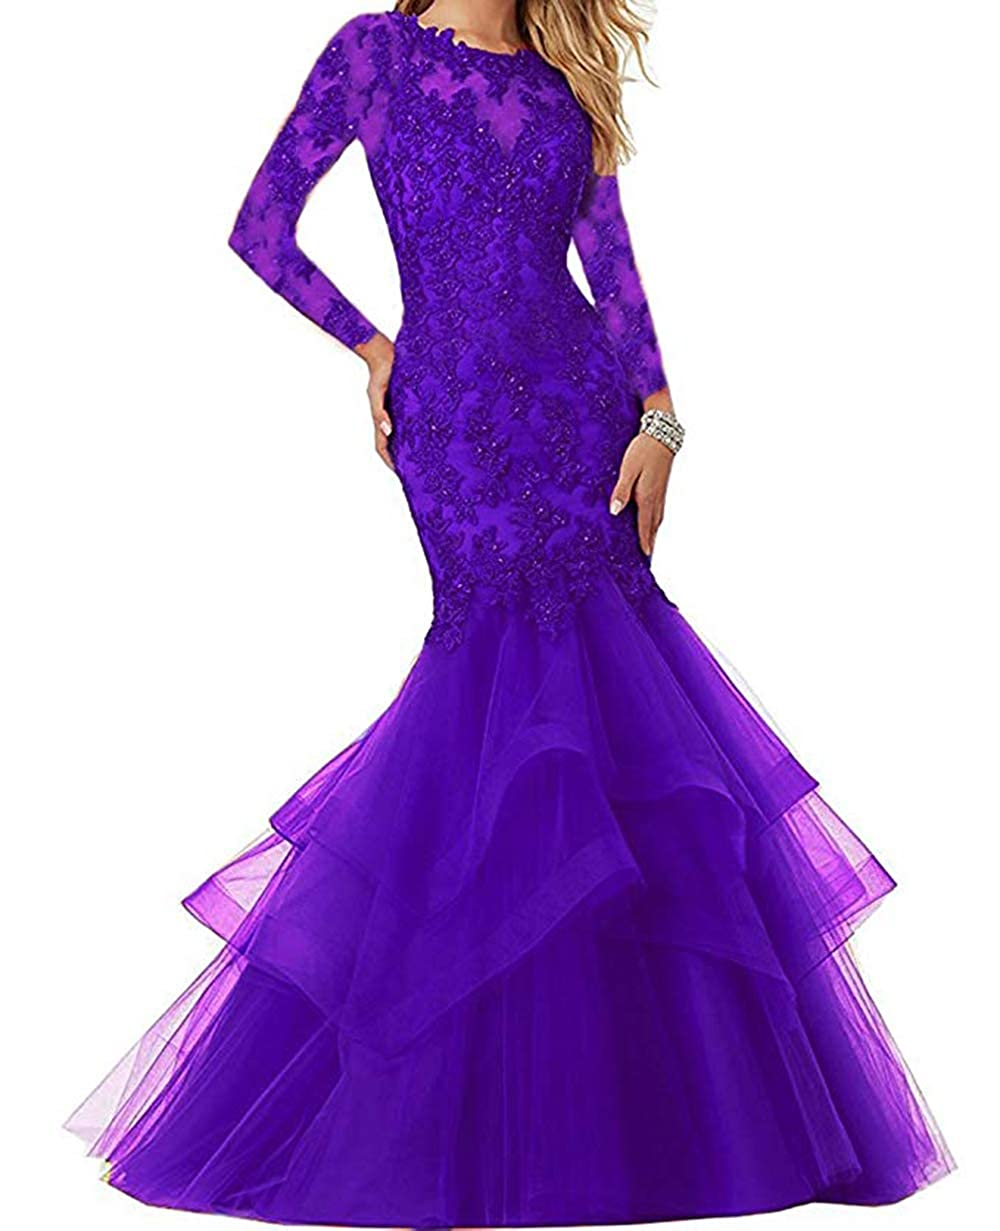 Dark Purple Women's Mermaid Prom Dresses Beaded Lace Appliques Formal Evening Gowns Long Sleeves